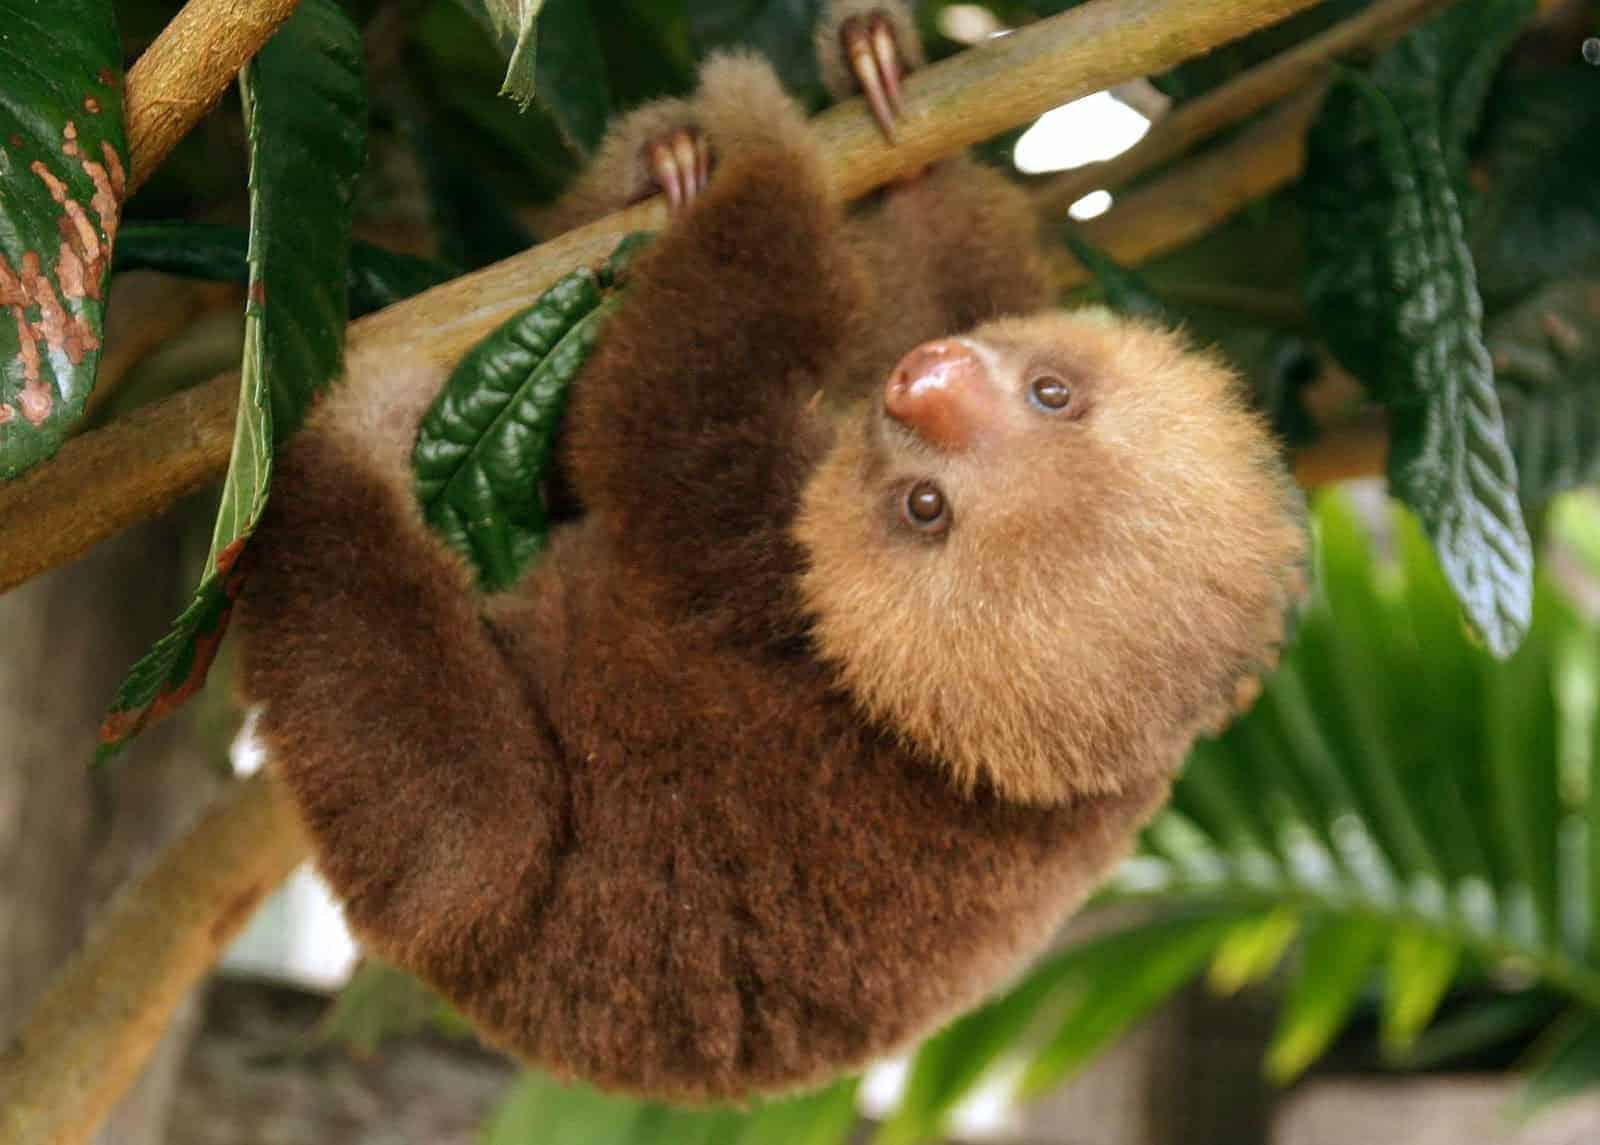 Millie the sloth, as pictured in 2007 at Toucan Rescue Ranch in Costa Rica.